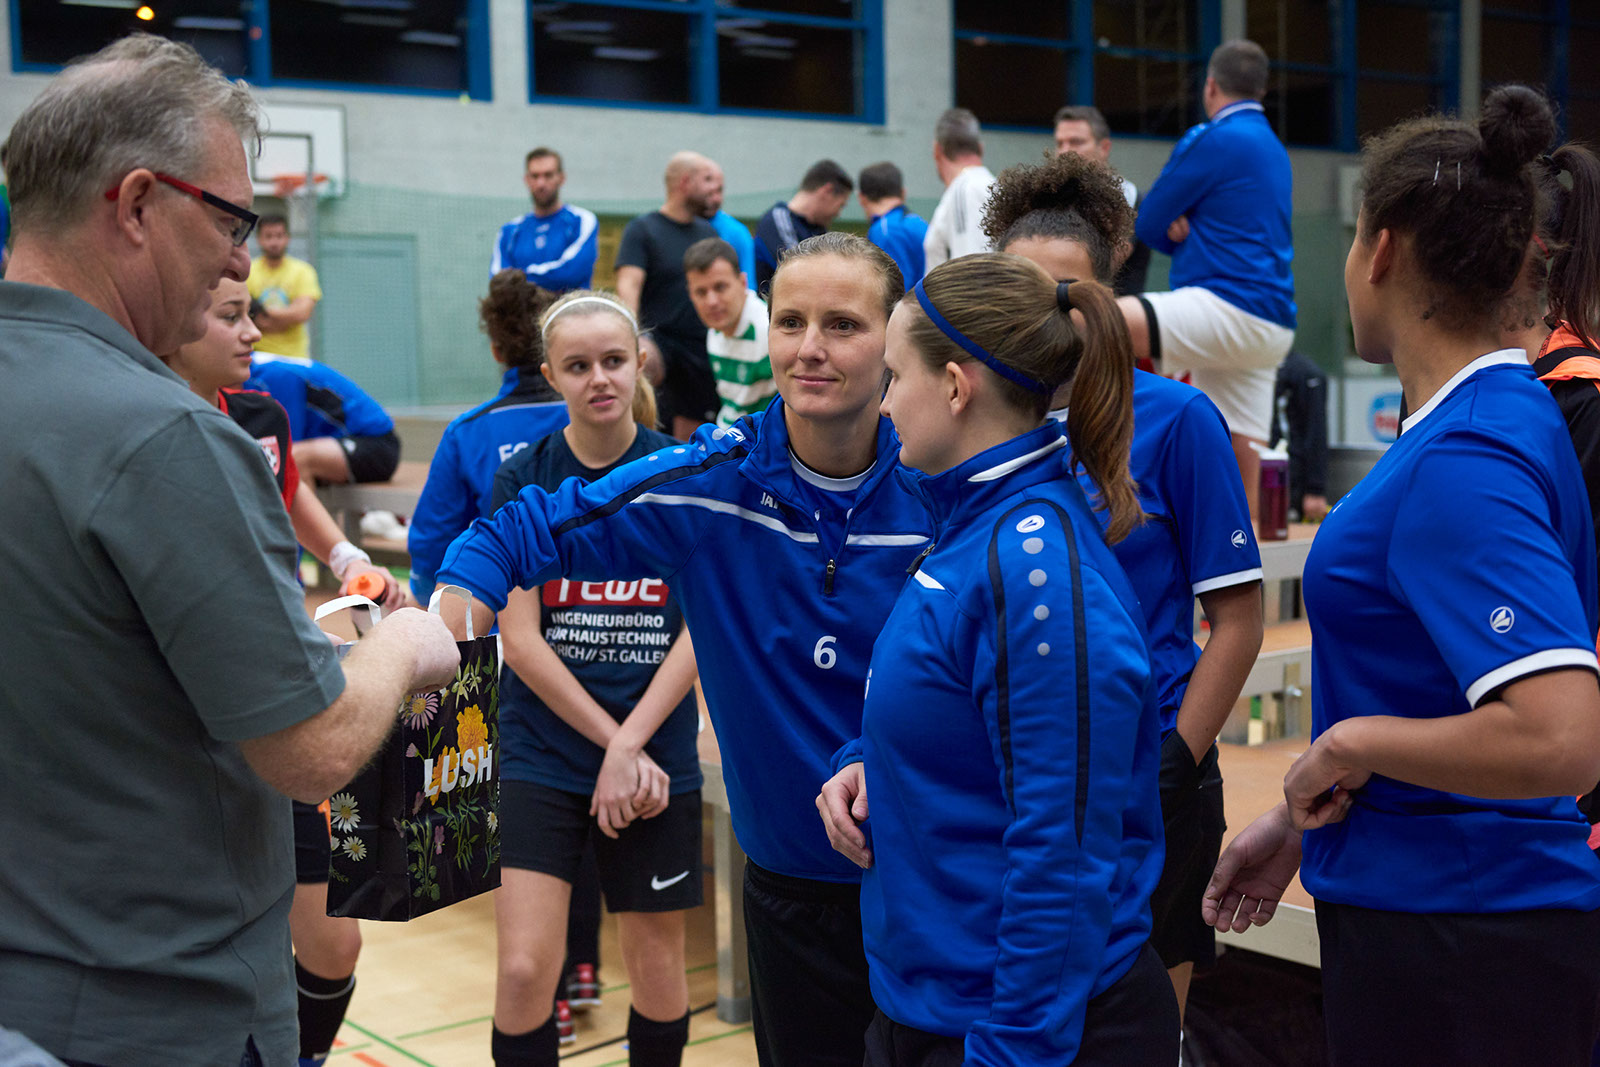 Bodensee-Cup_20171110_201638.jpg